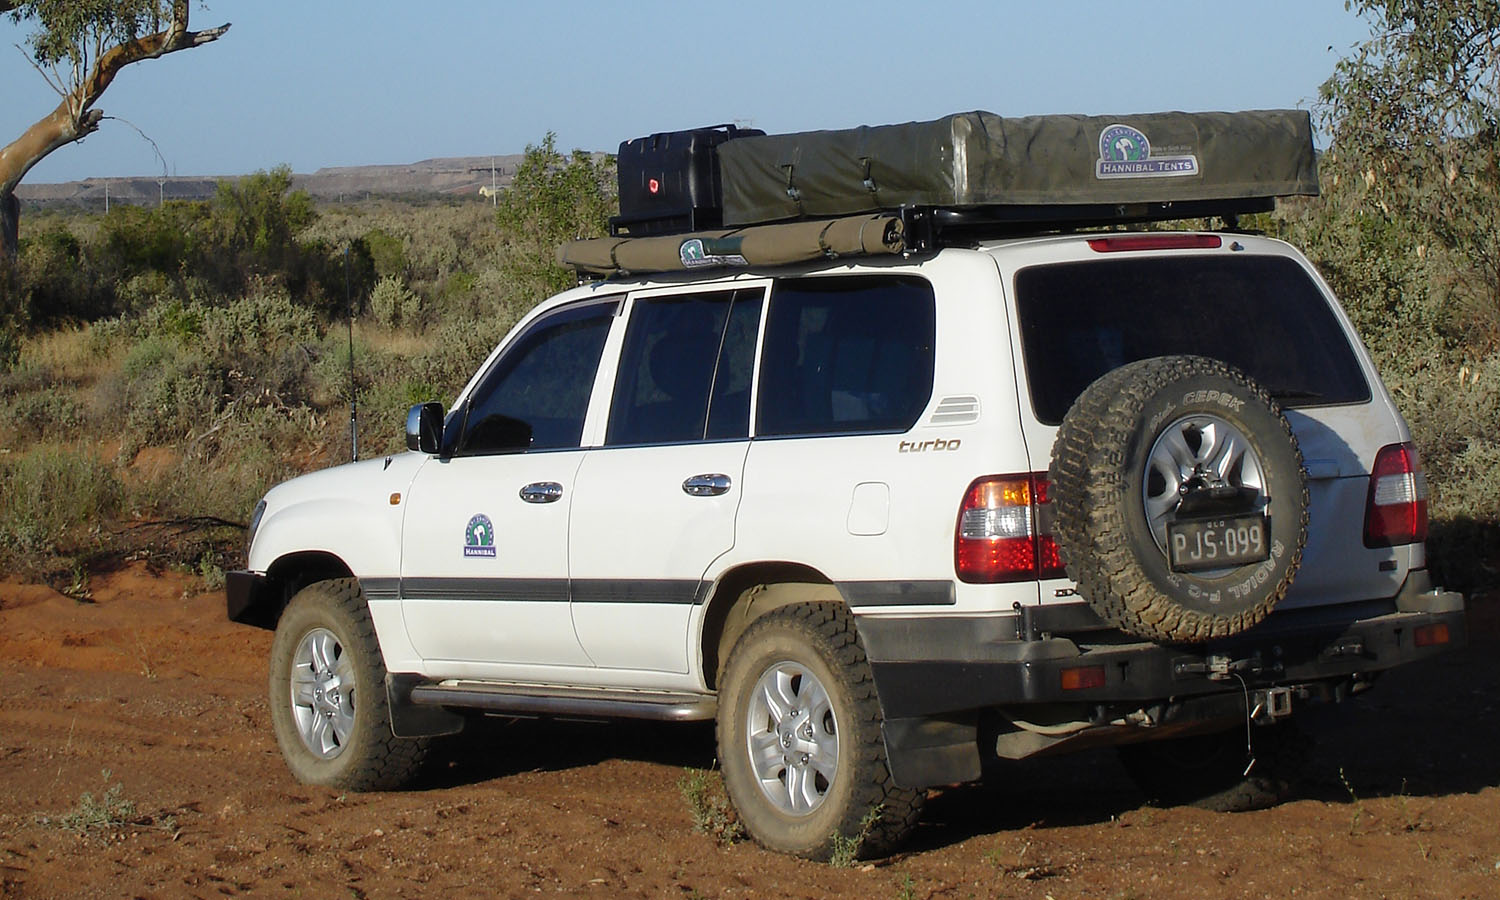 Hannibal Roof Racks For 100 Series Toyota Landcruiser